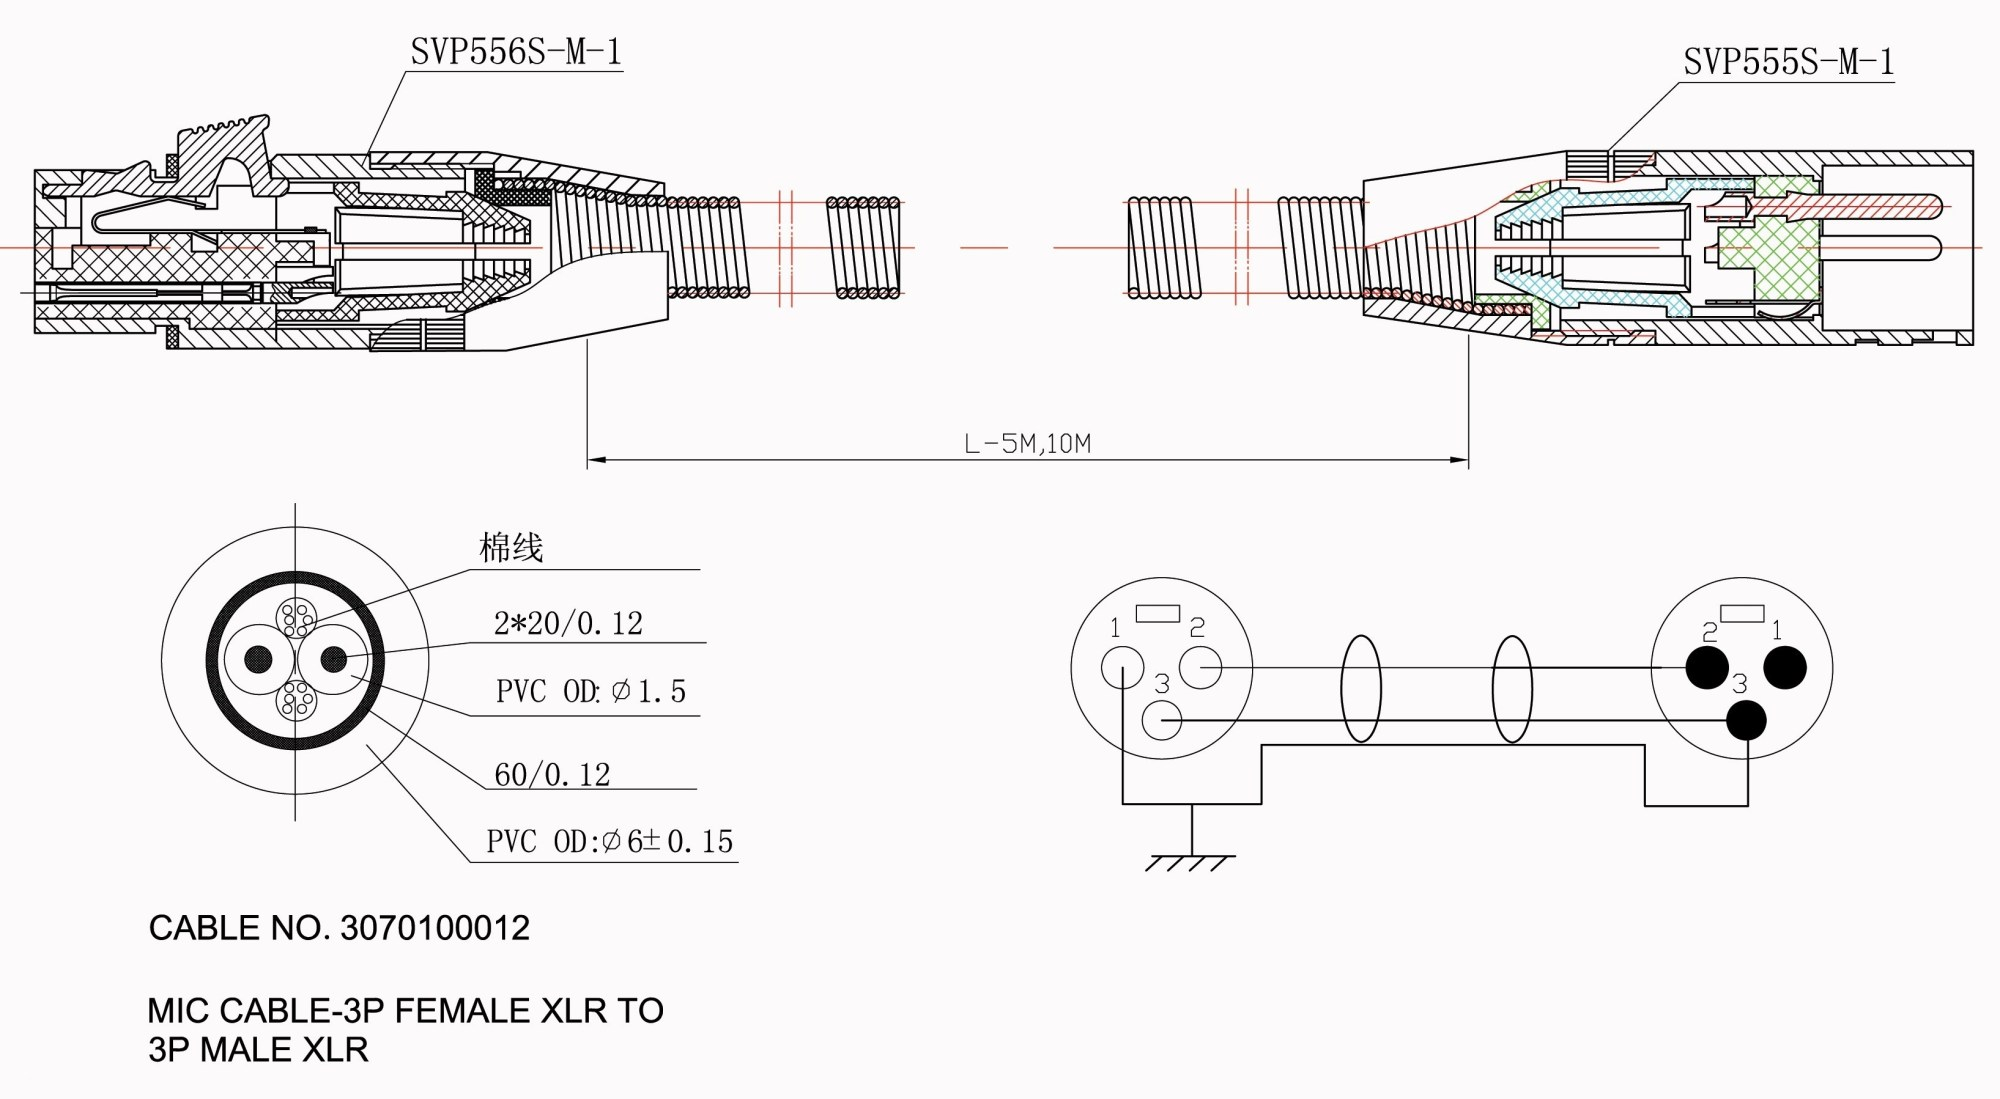 hight resolution of electric baseboard wiring diagram wiring diagram for electric baseboard heater with thermostat best wiring diagram